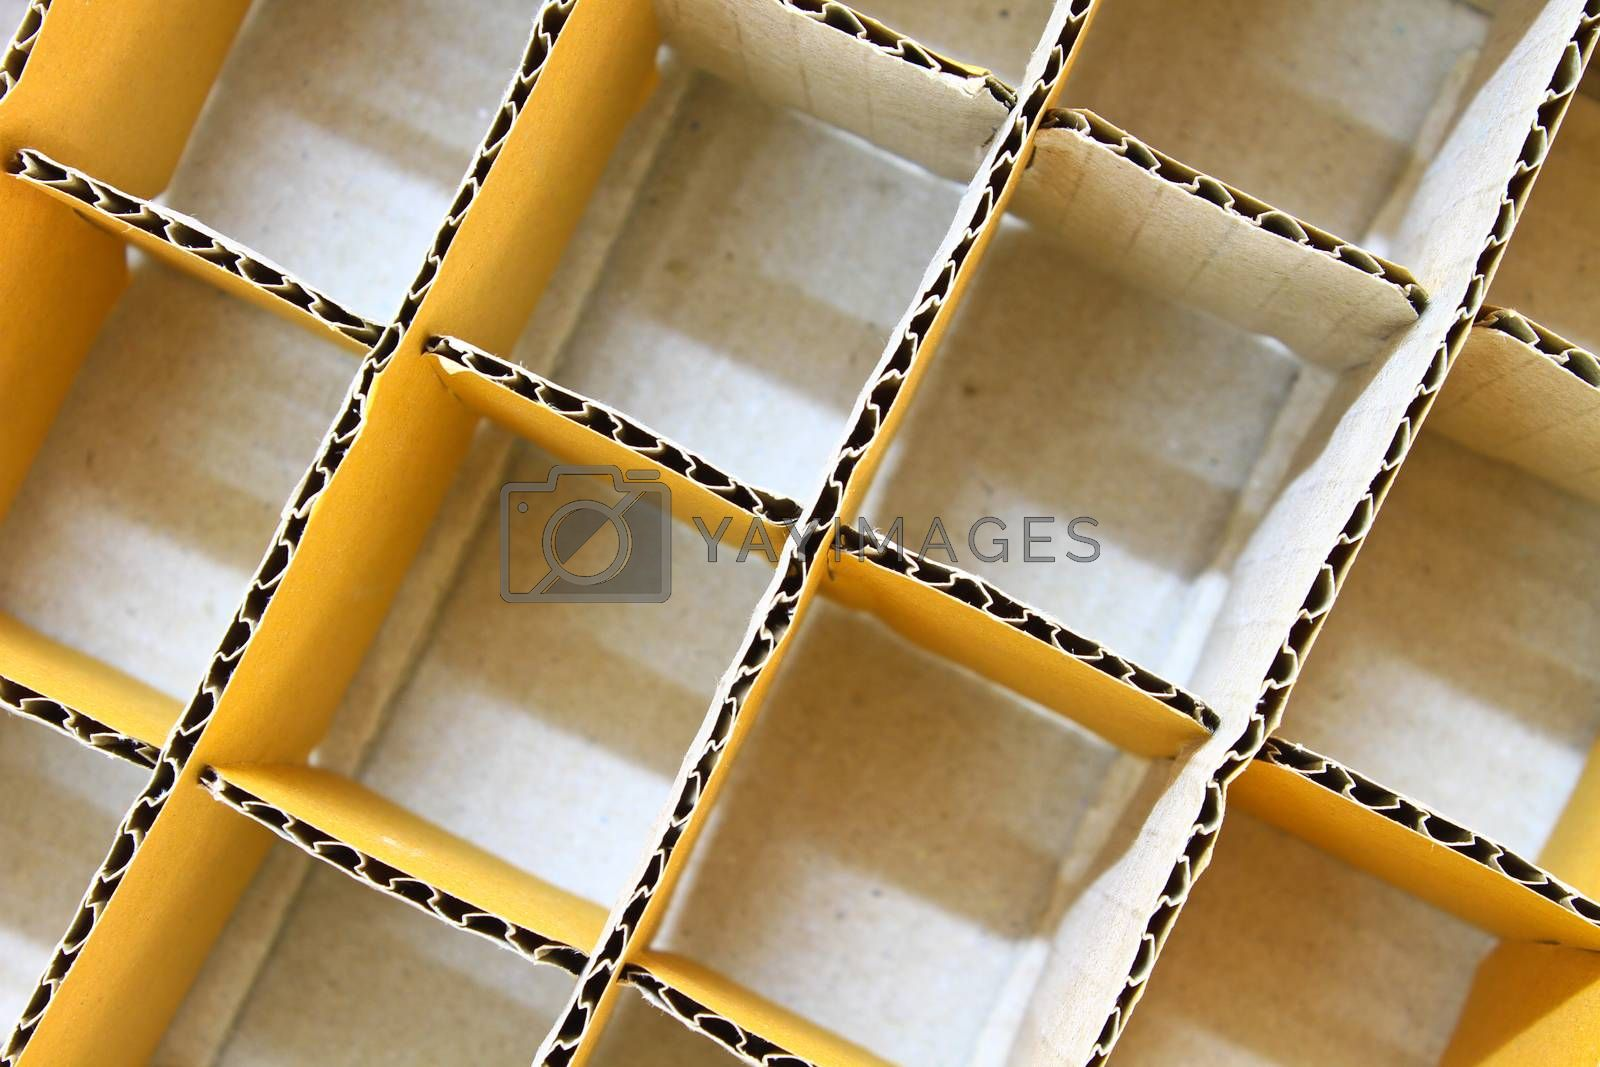 Royalty free image of Cardboard box  by forest71